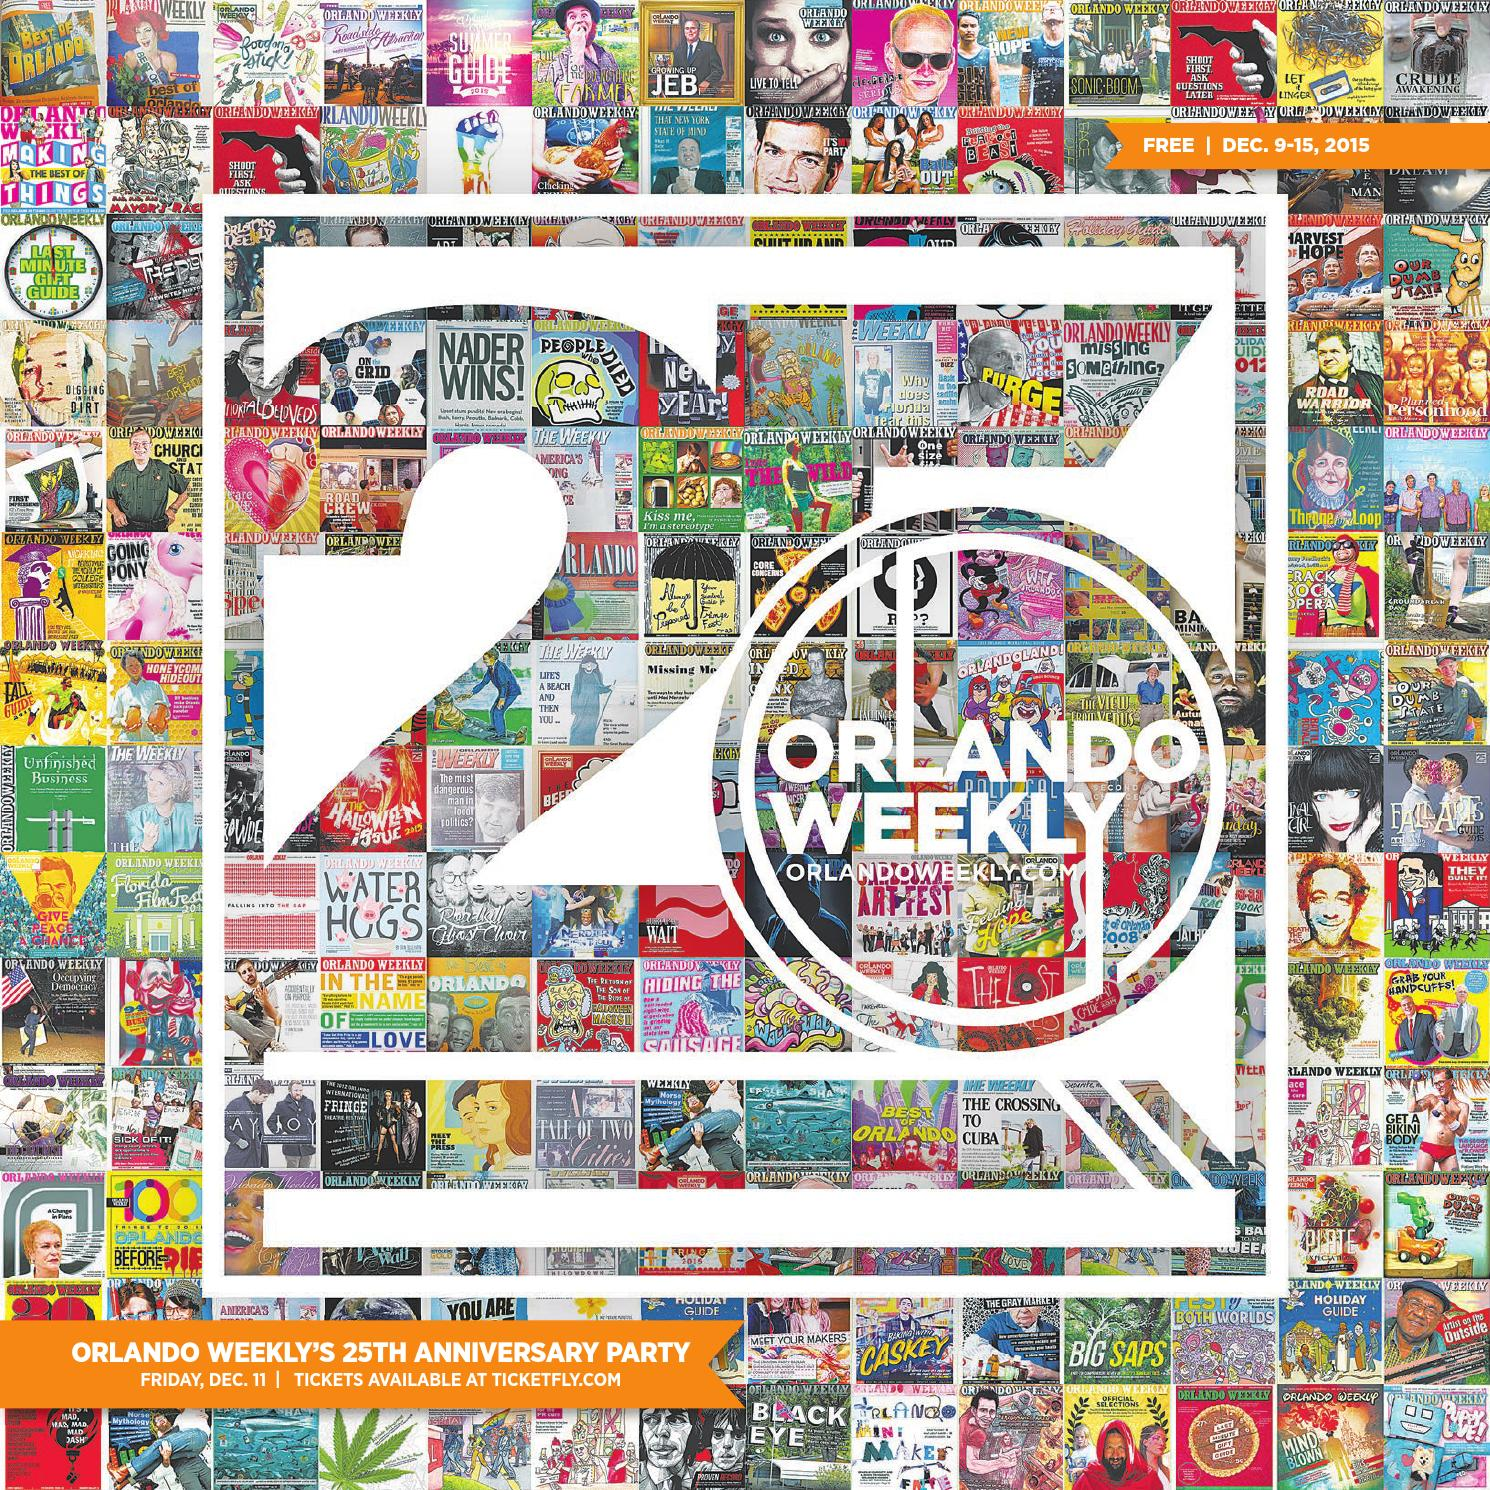 Orlando Weekly December 09, 2015 by Euclid Media Group - issuu